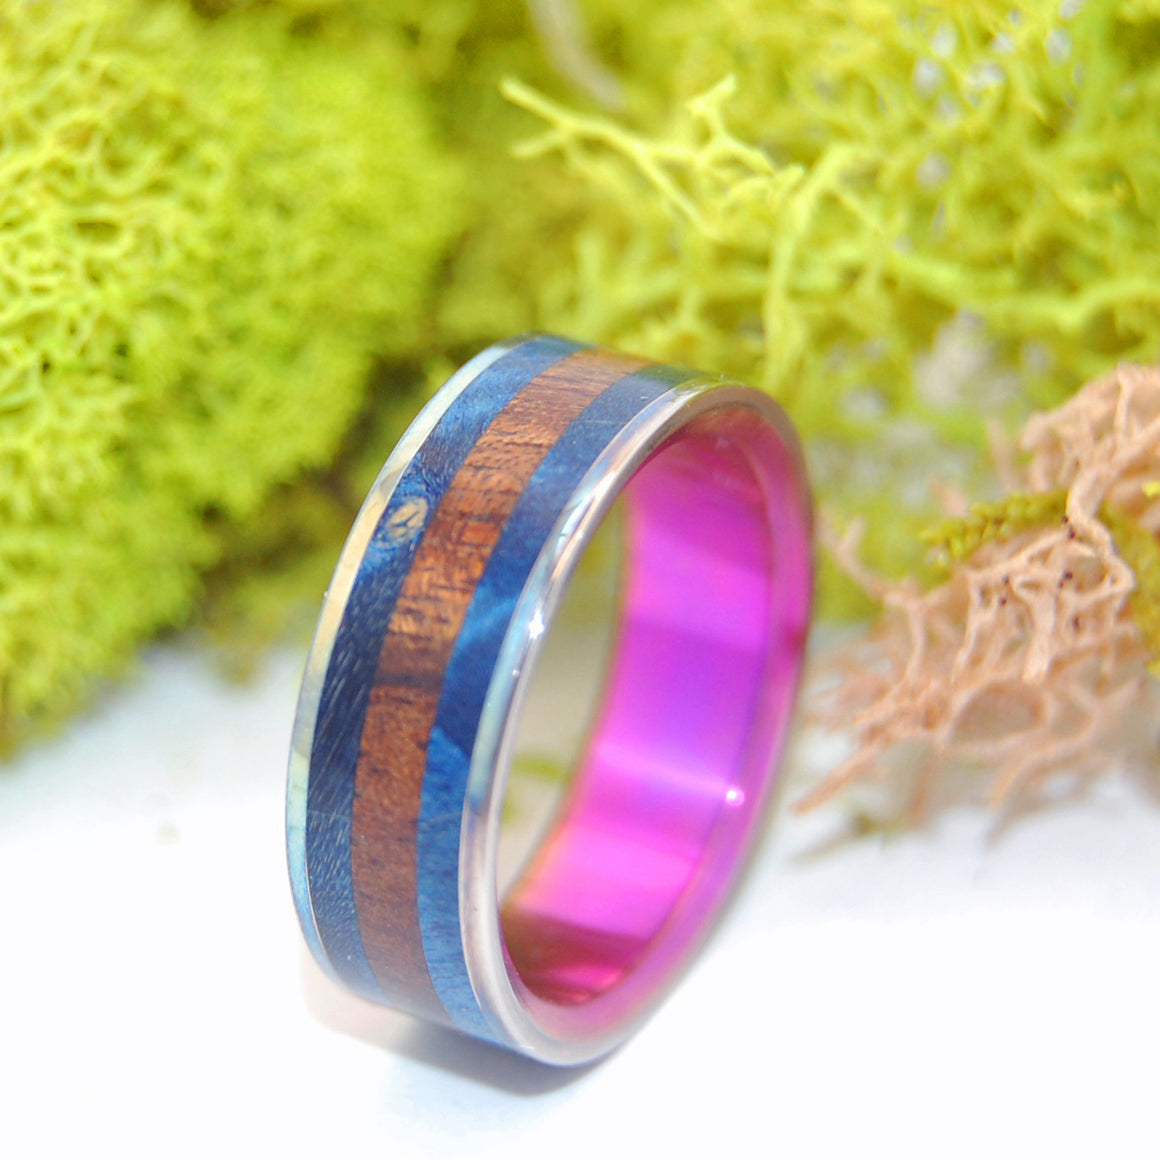 Eastern Bluebird | Wood and Hand Anodized Titanium Wedding Ring - Minter and Richter Designs